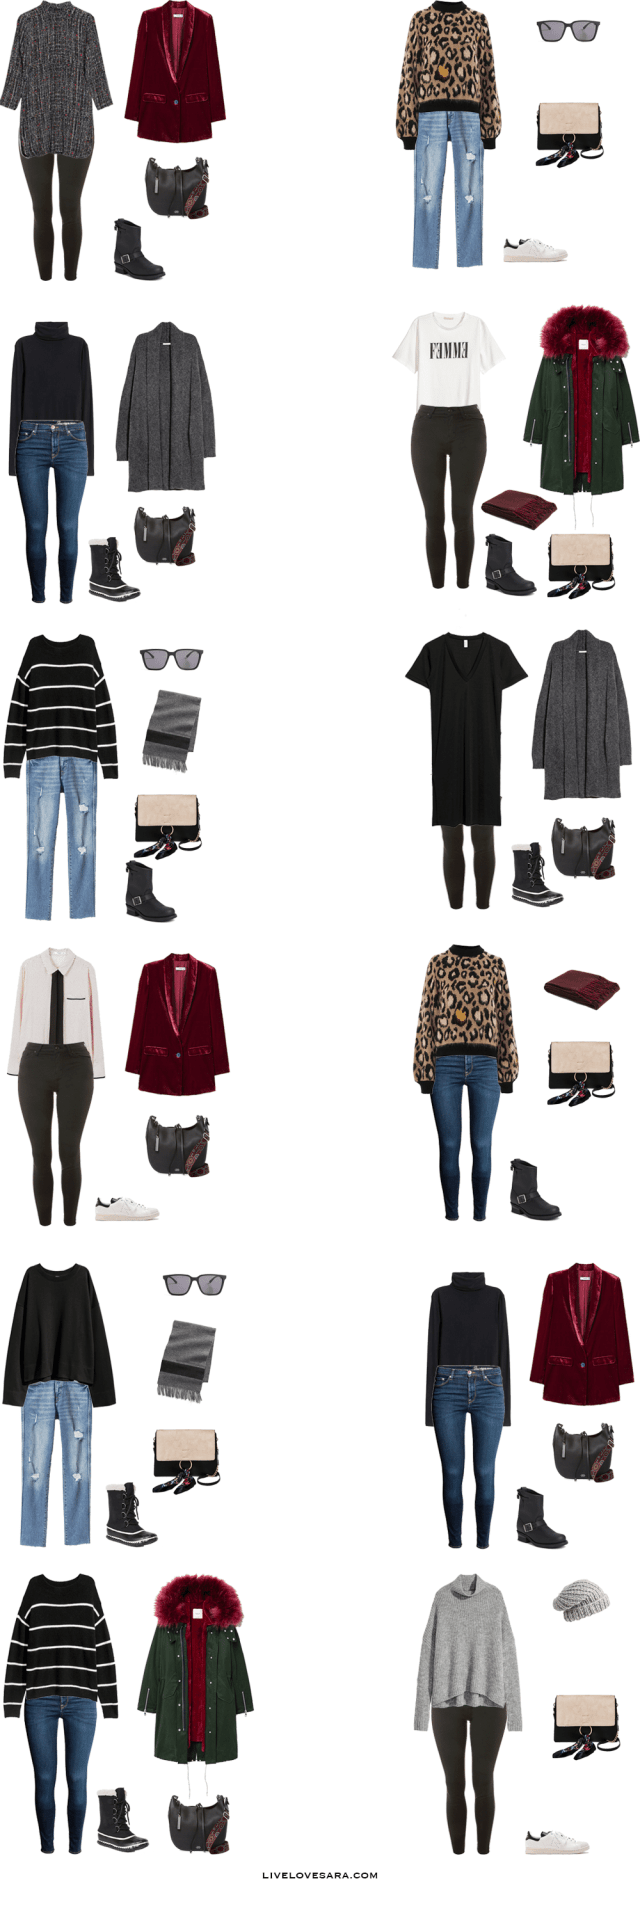 What to Pack for the Vienna, Austria Packing Light List Outfit Options 13-24#packinglist #packinglight #travellight #travel #capsule #capsulewardrobe #livelovesara